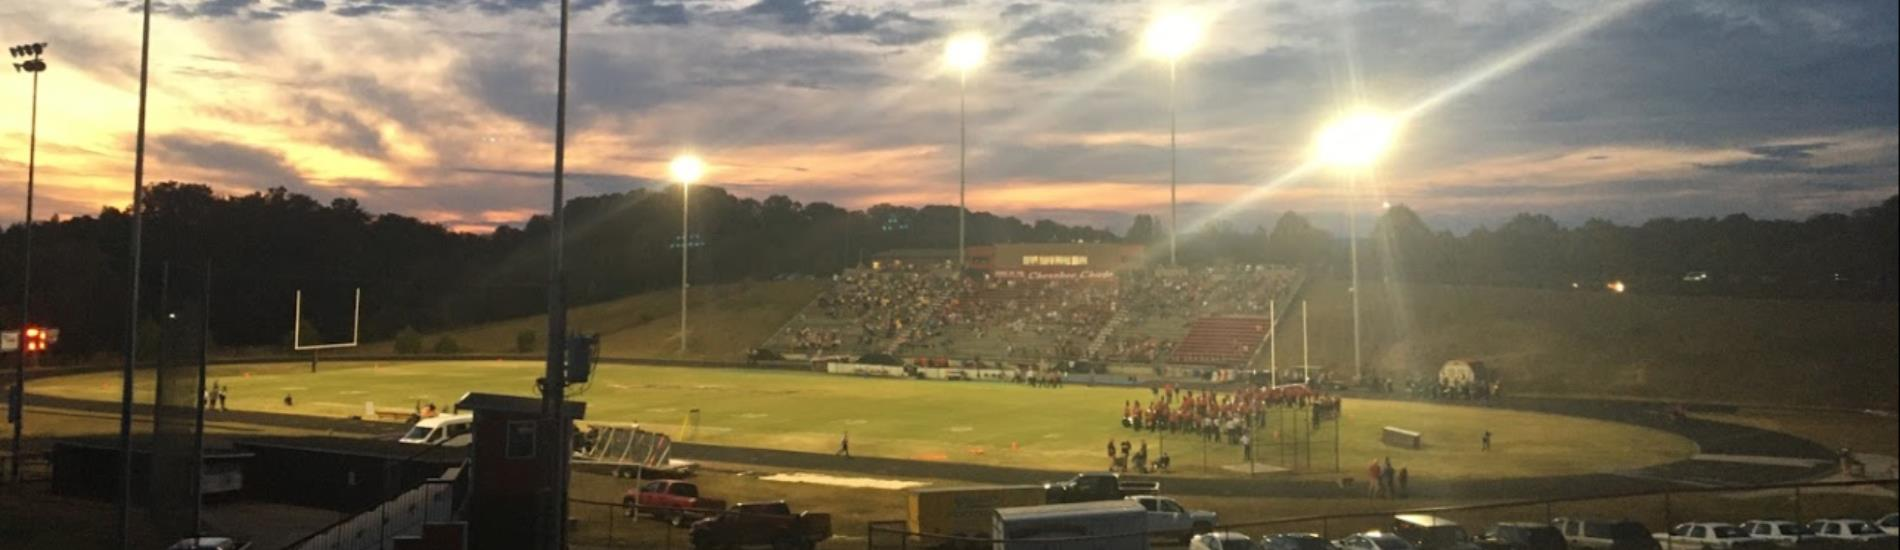 Cherokee high school football field